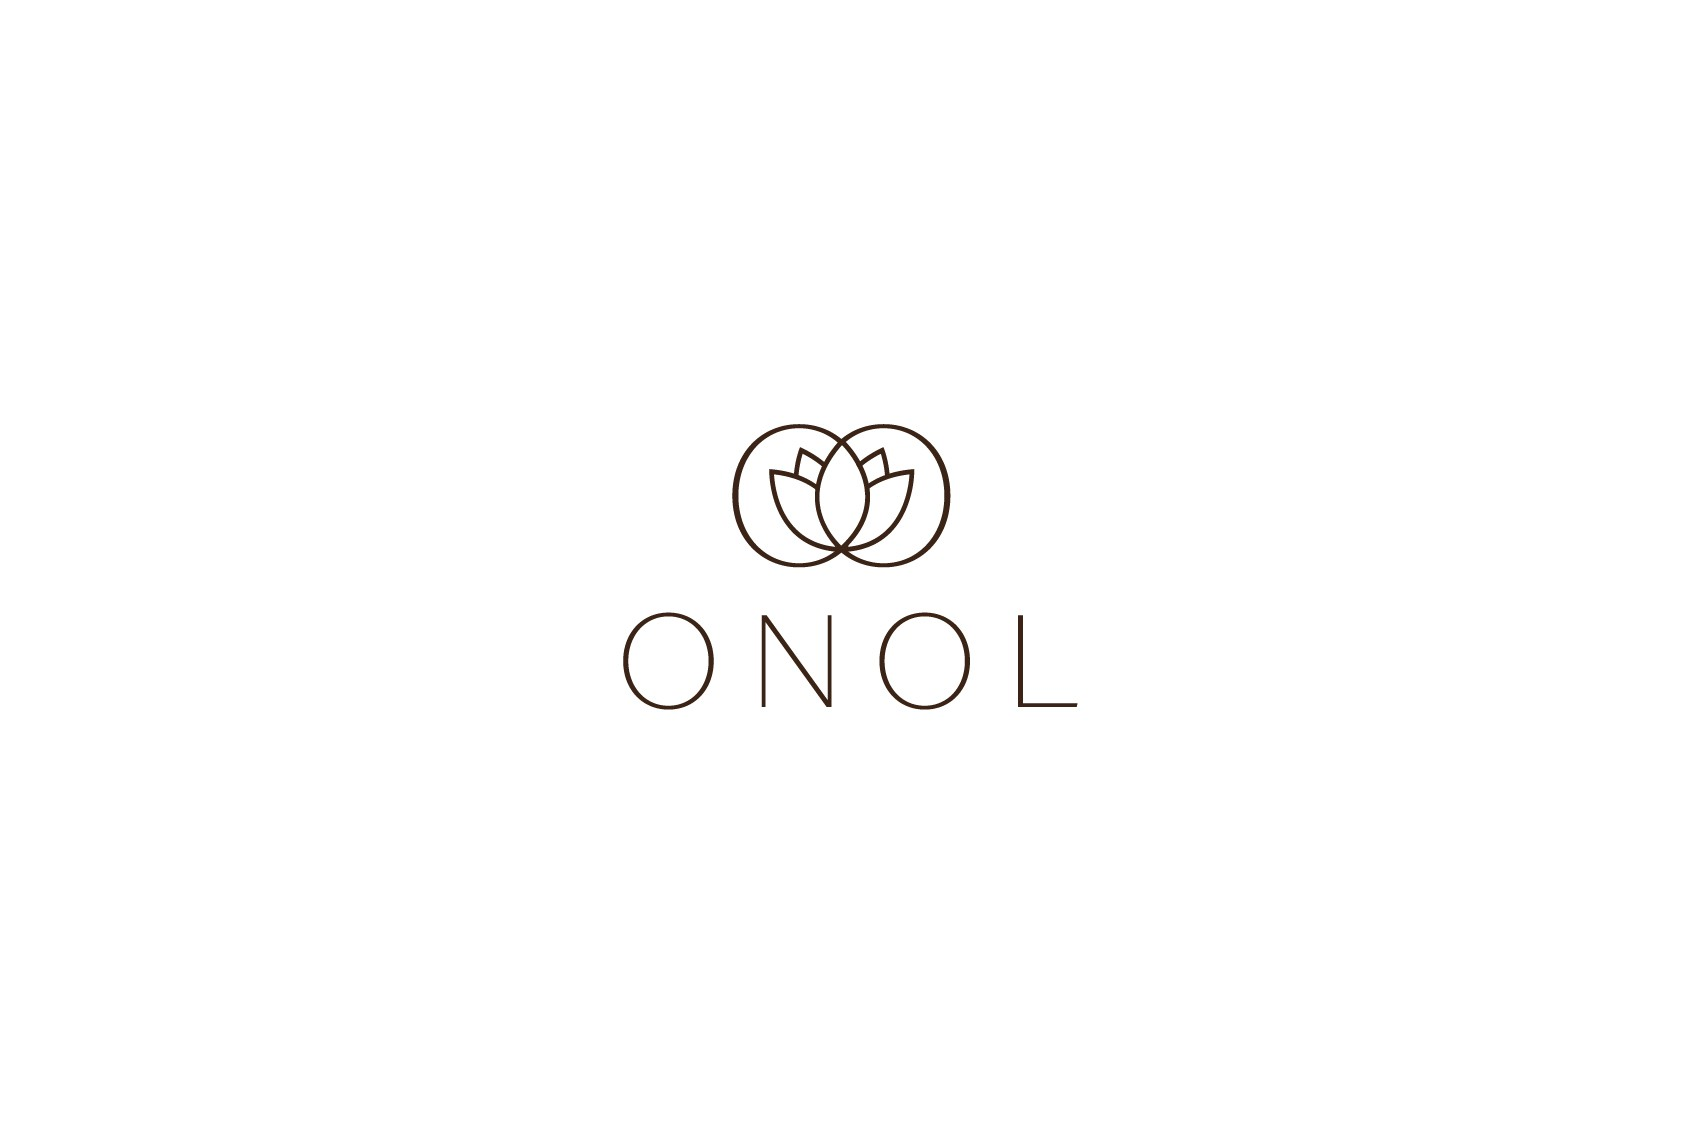 Create an enthralling logo for a pharmaceutical/nutraceutical company